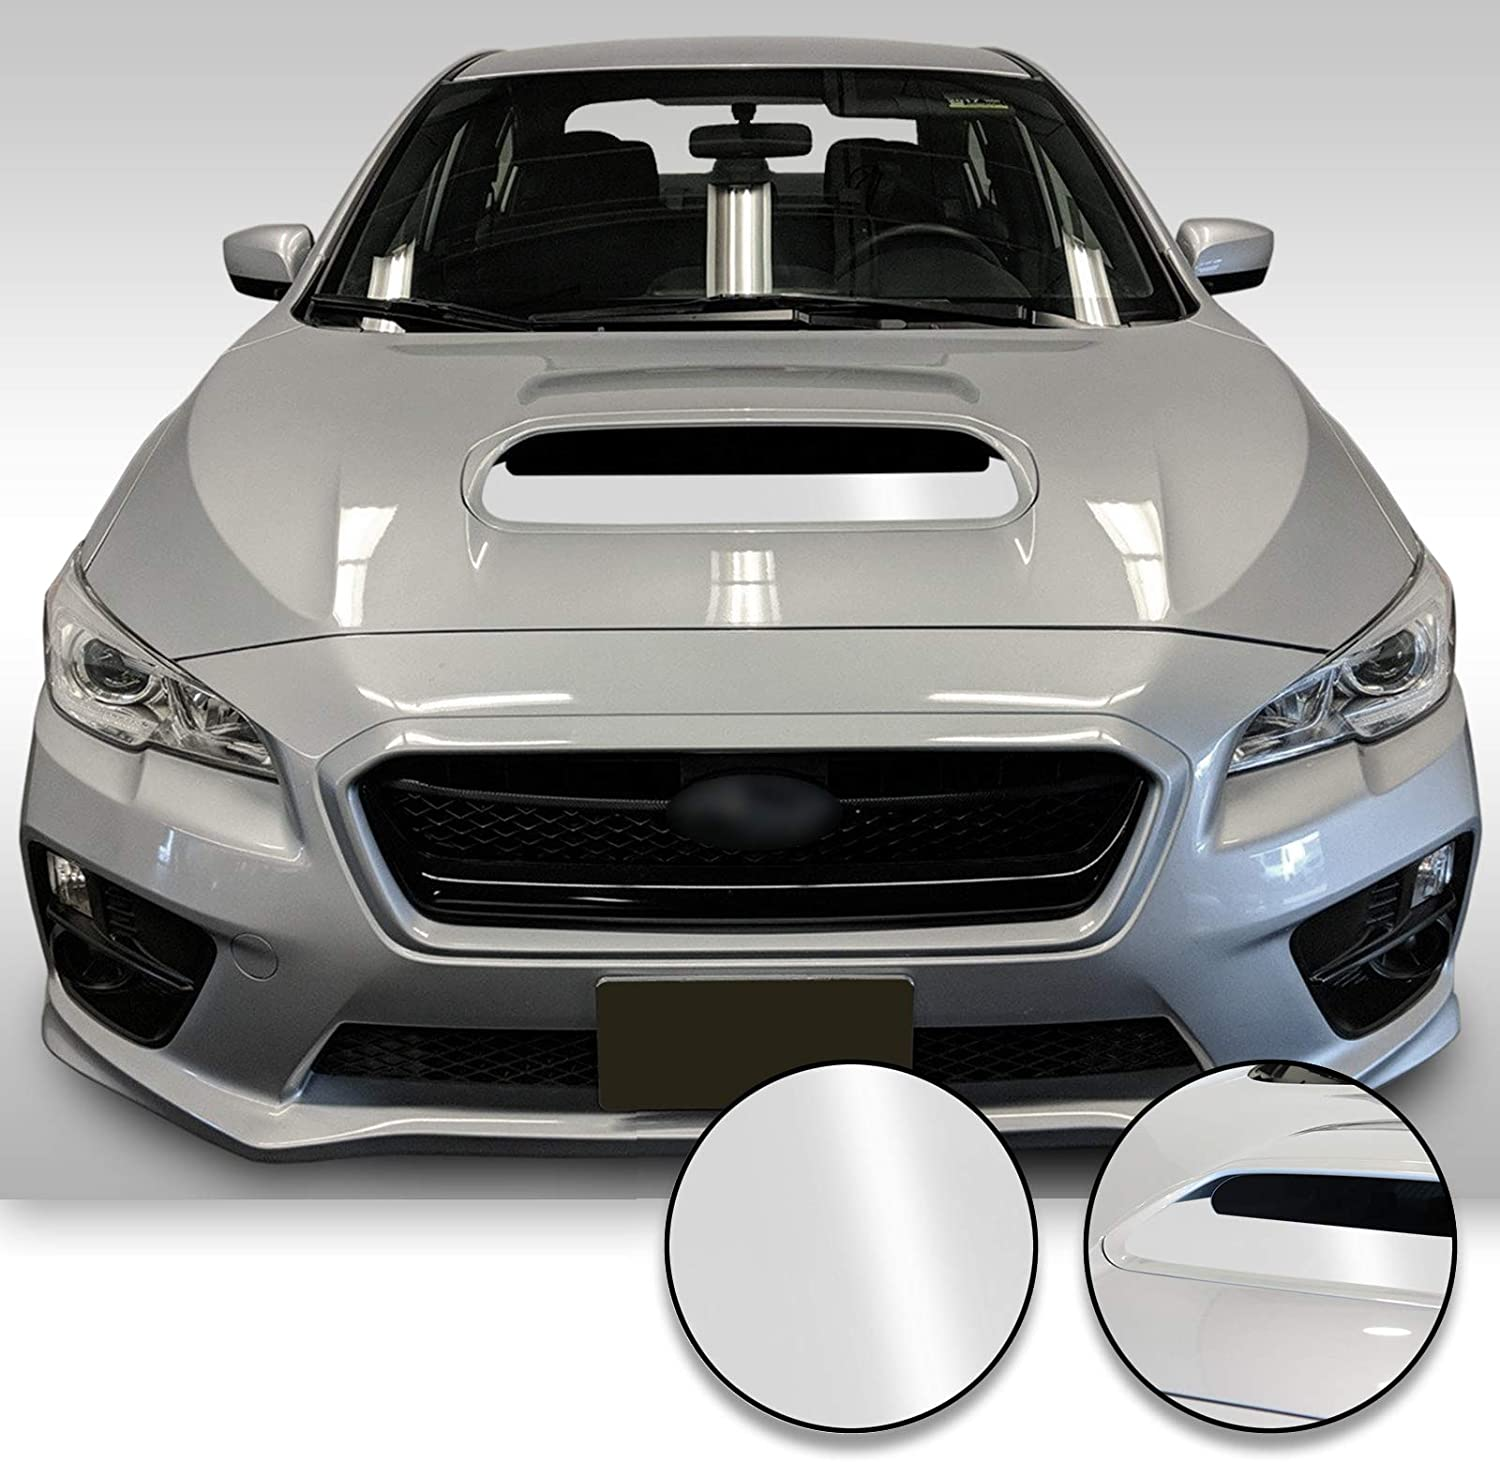 Glitter Gloss Black Optix Hood Scoop Vinyl Decal Overlay Wrap Trim Inserts Sticker Compatible with and Fits WRX STi 2015 2016 2017 2018 2019 2020